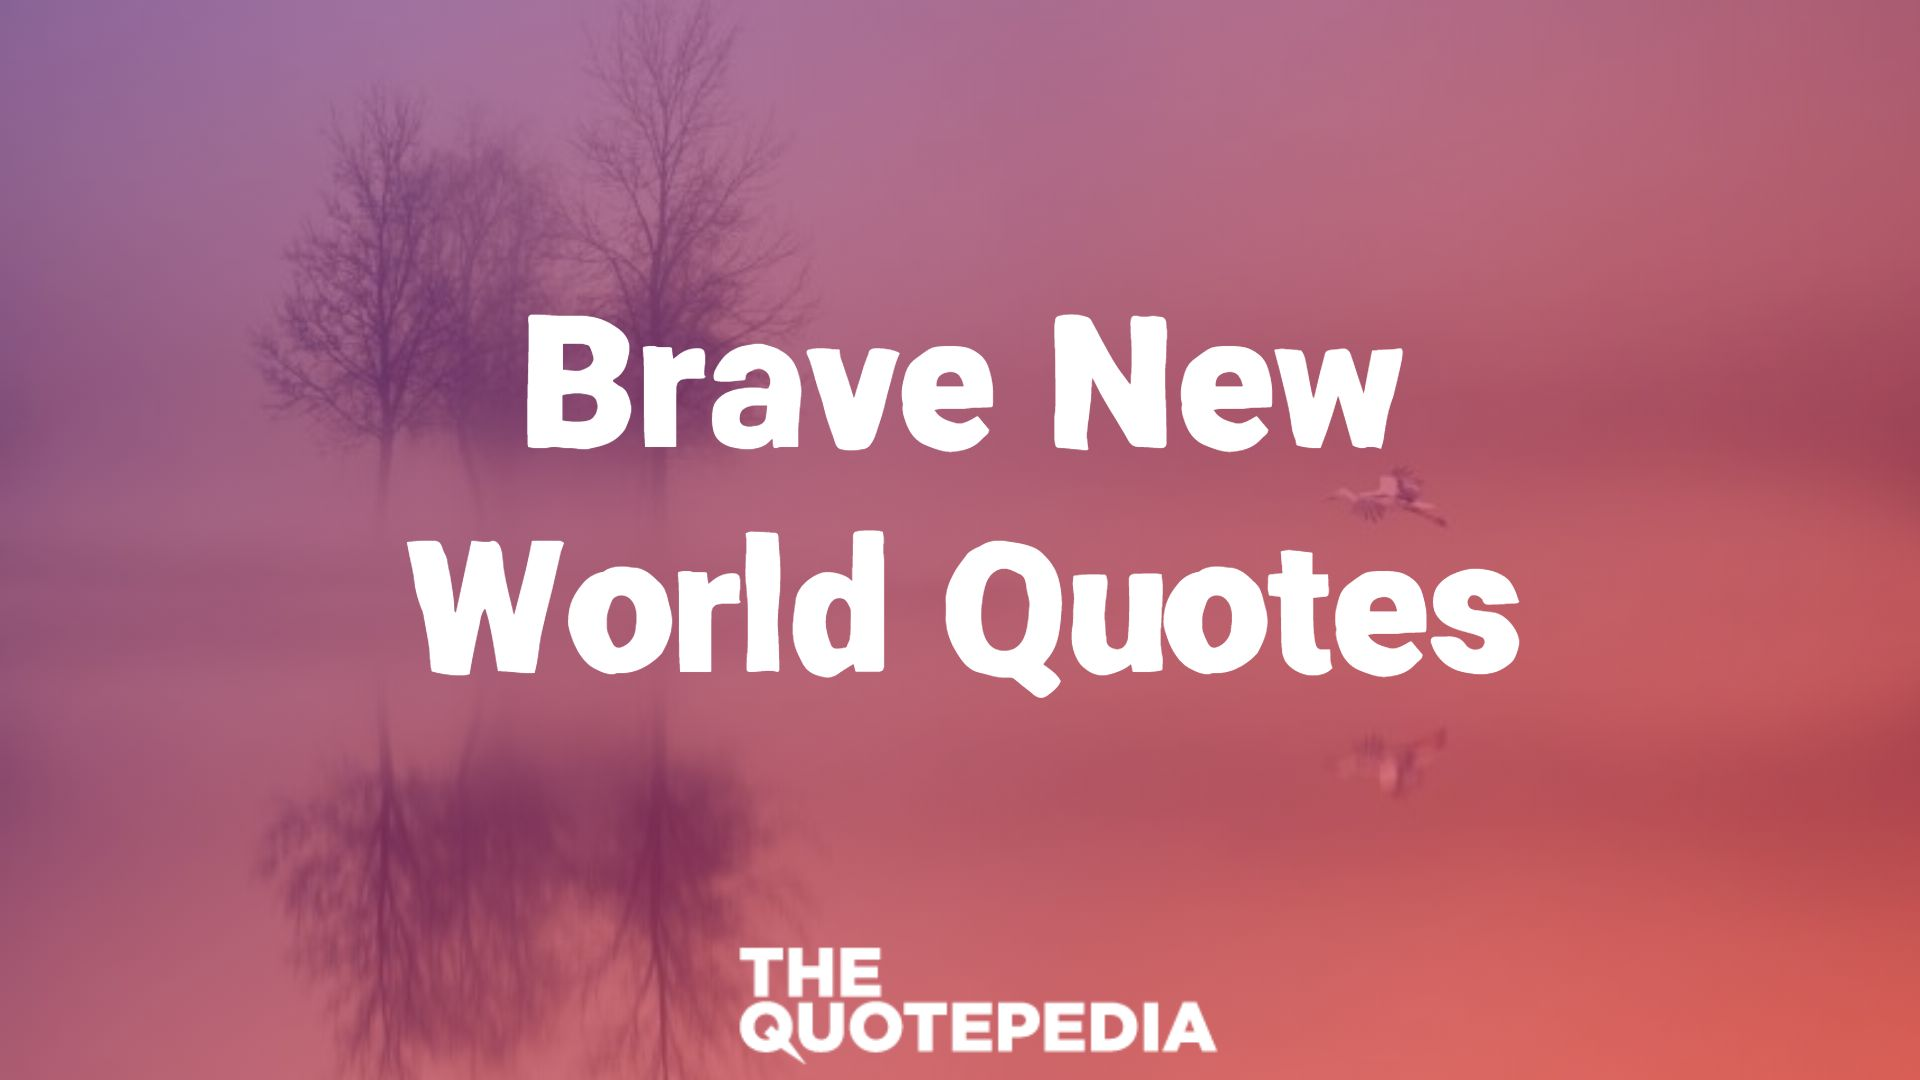 Brave New World Quotes